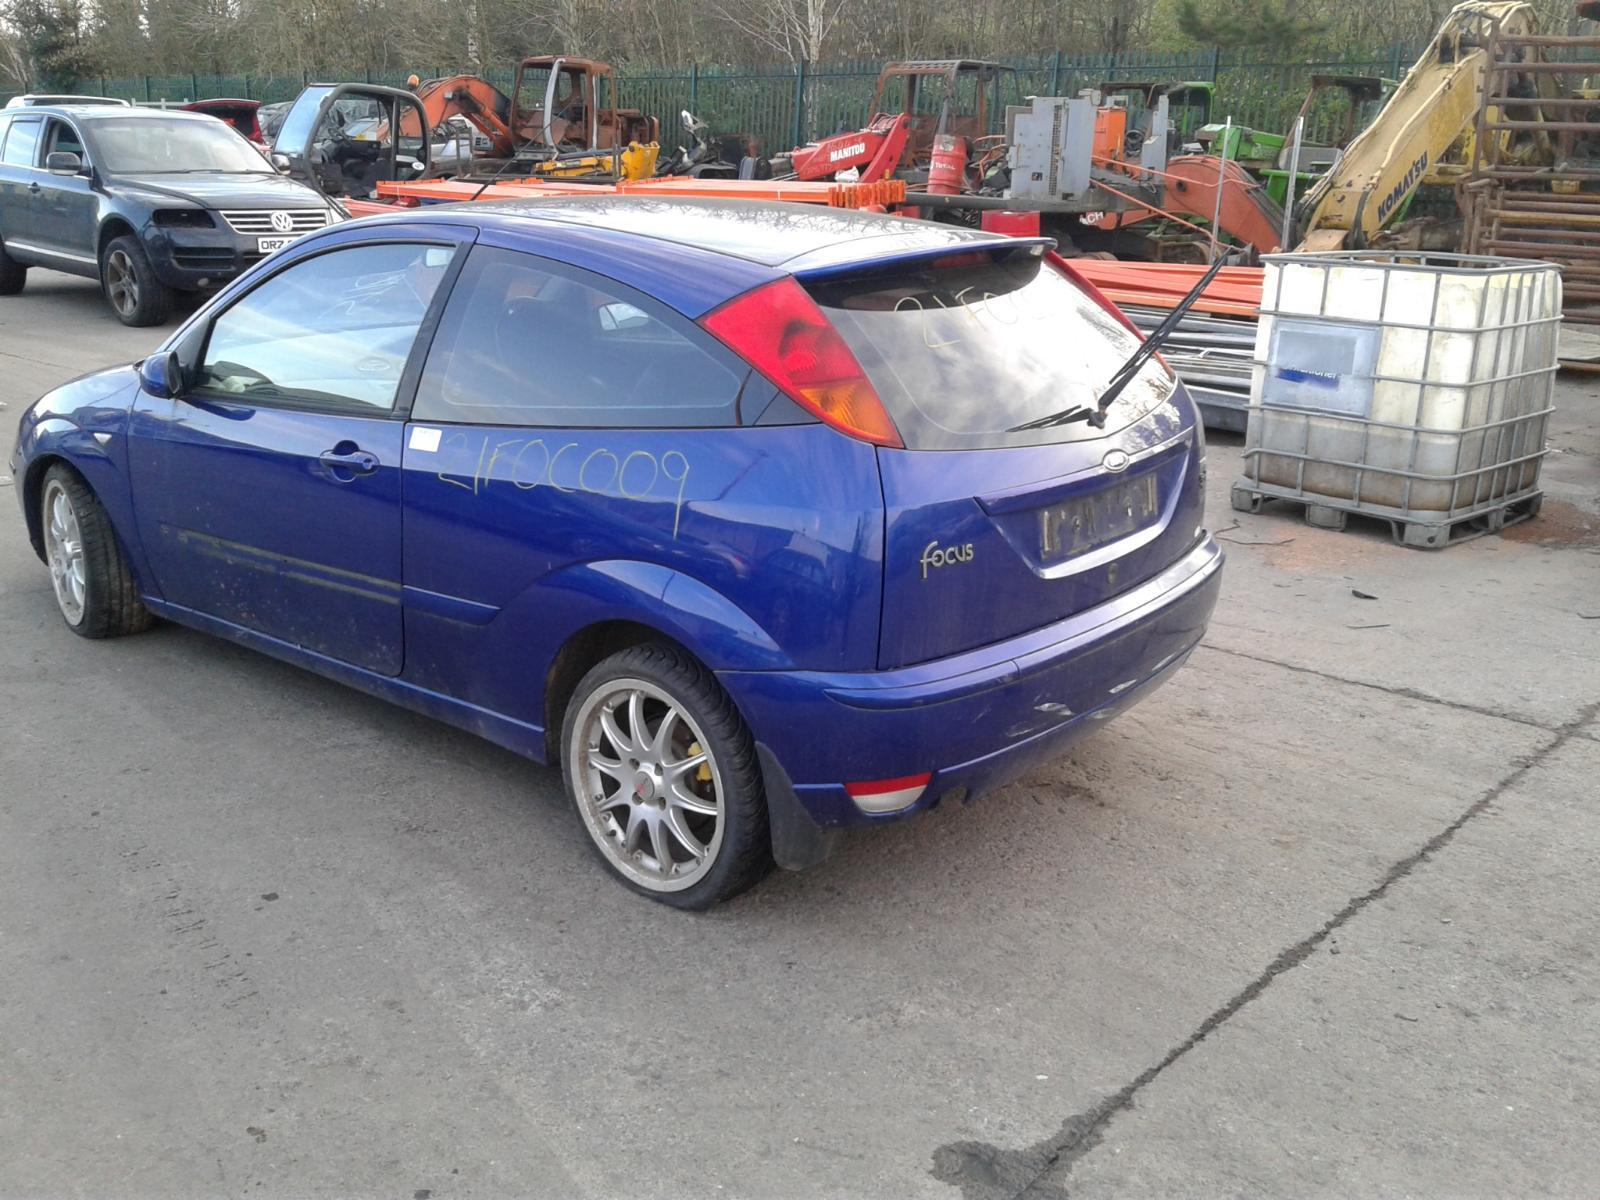 2004 FORD FOCUS Image